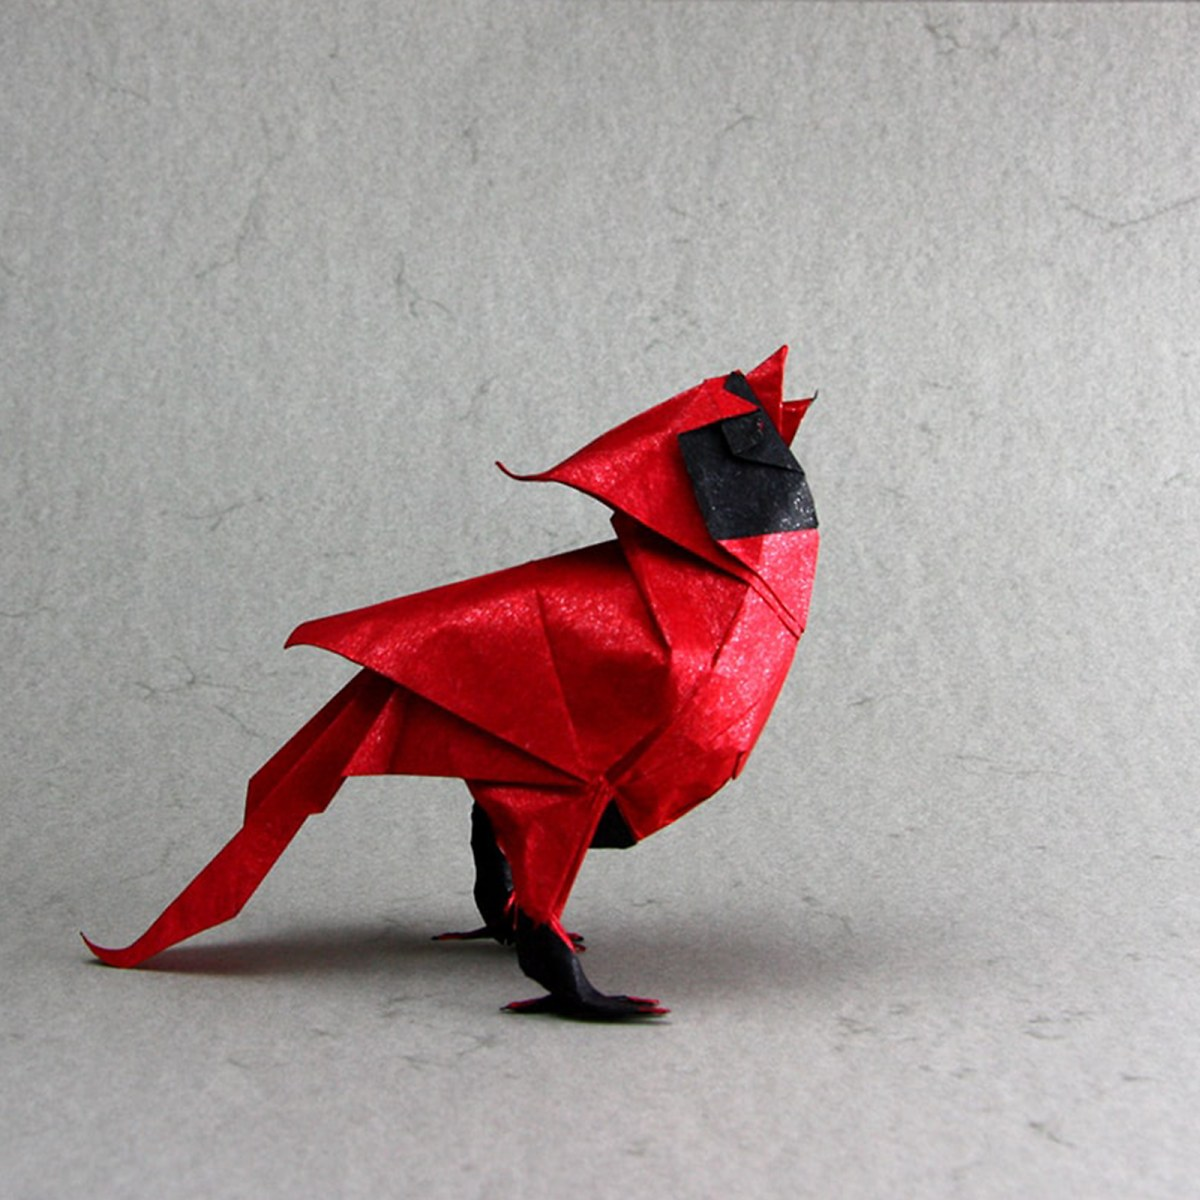 The Beginner's Guide to Paper Folding - Learn How to Make Origami | 1200x1200